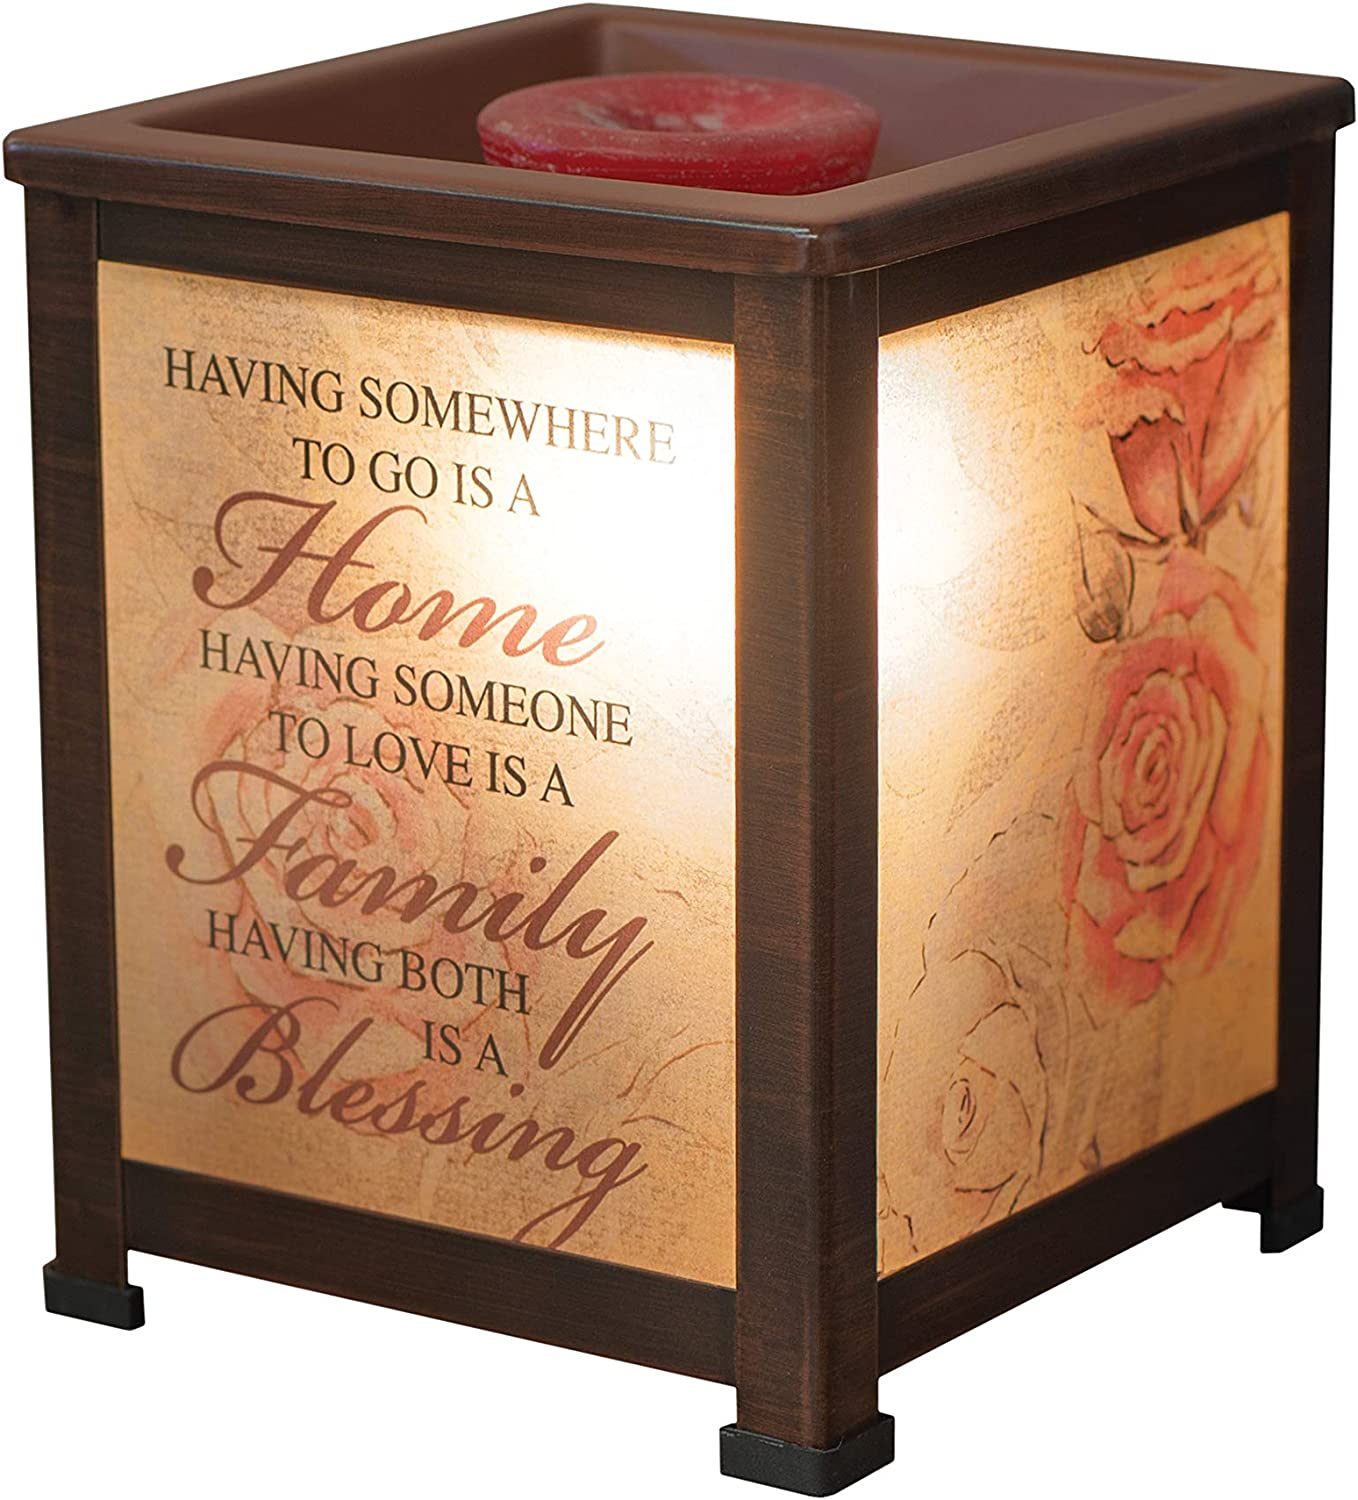 Elanze Designs Home Love Family Blessing Roses Copper Tone Metal Electrical Wax Tart & Oil Glass Lantern Warmer